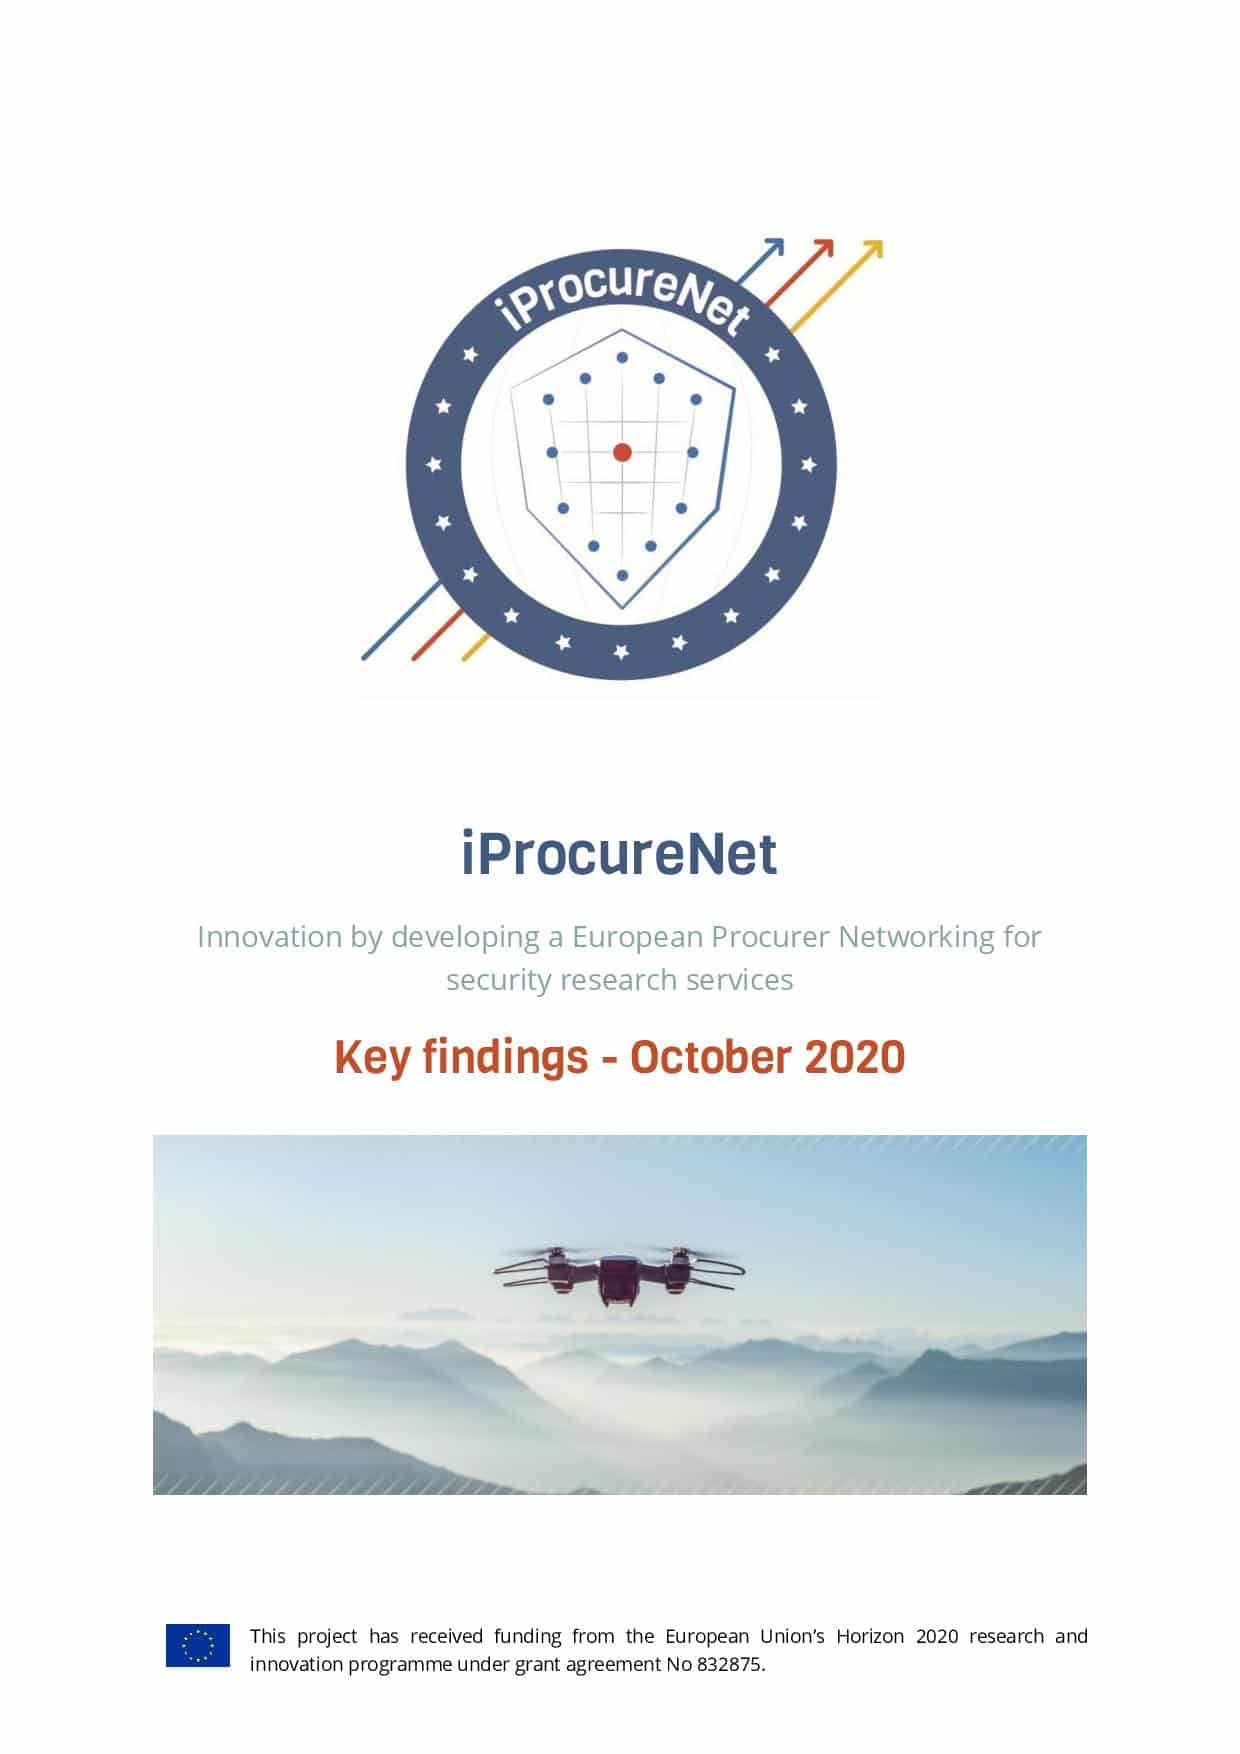 iProcureNet_Third report on findings_October 2020-1-page-001